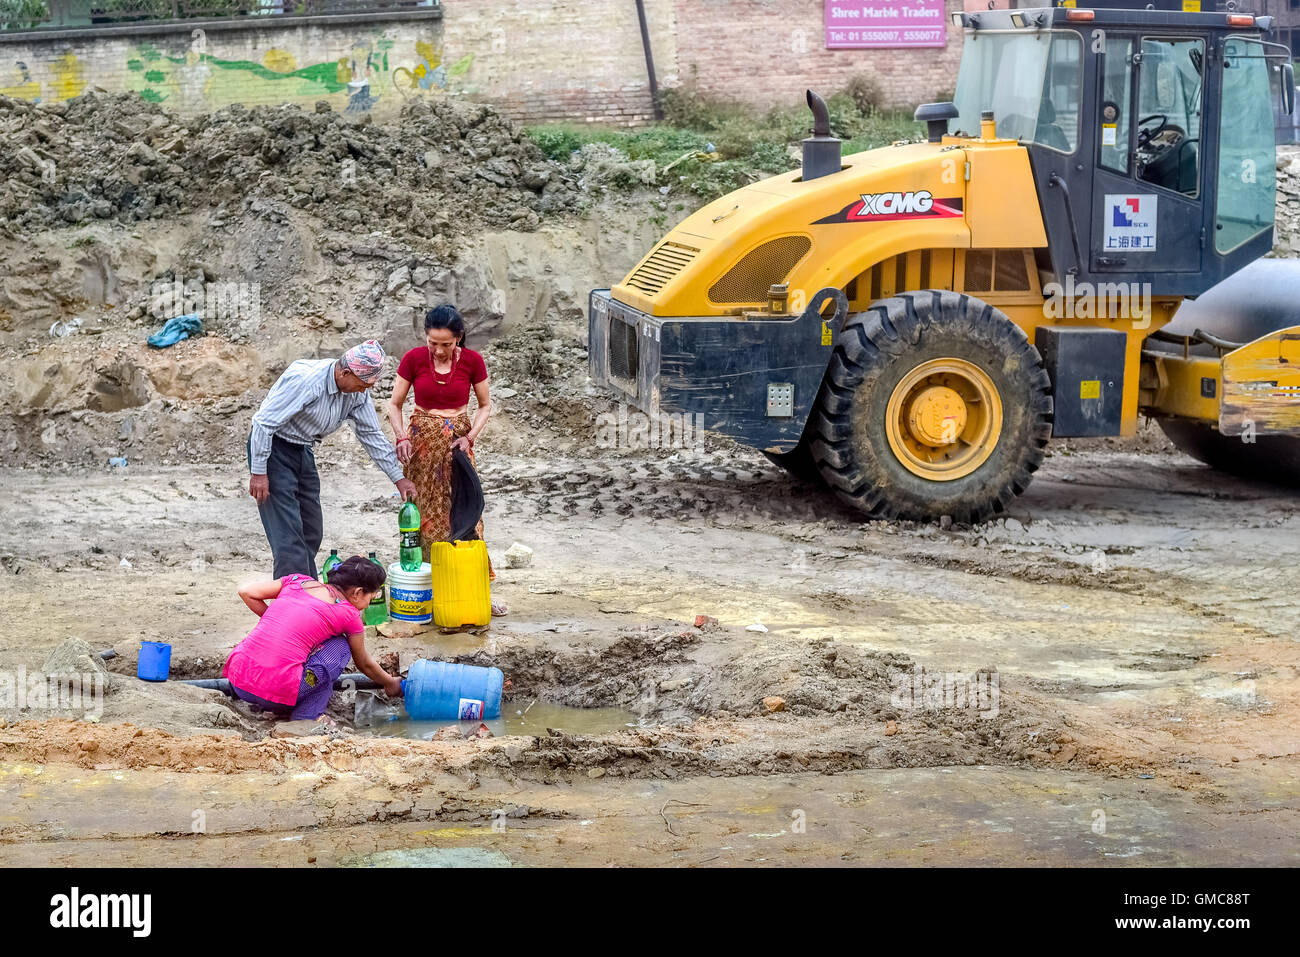 A local family collecting water from a broken pipe in Kathmandu, Nepal. © Reynold Sumayku - Stock Image